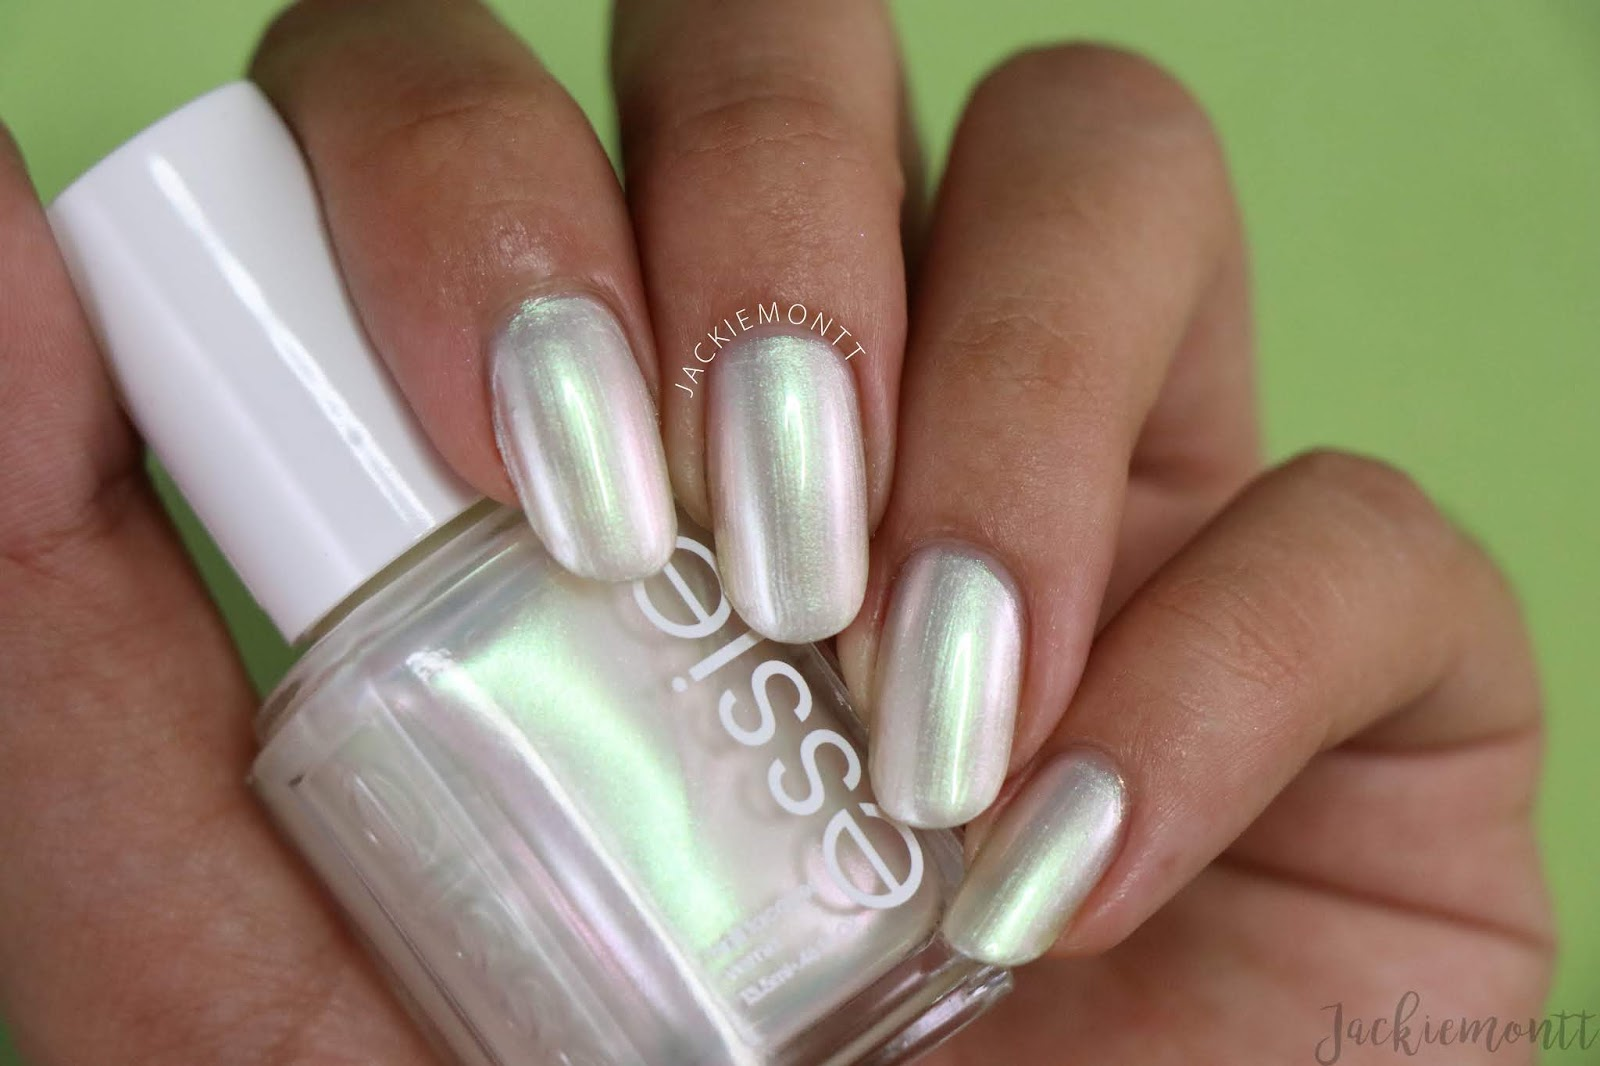 Essie Summer 2018 Collection Swatches and Review - JACKIEMONTT